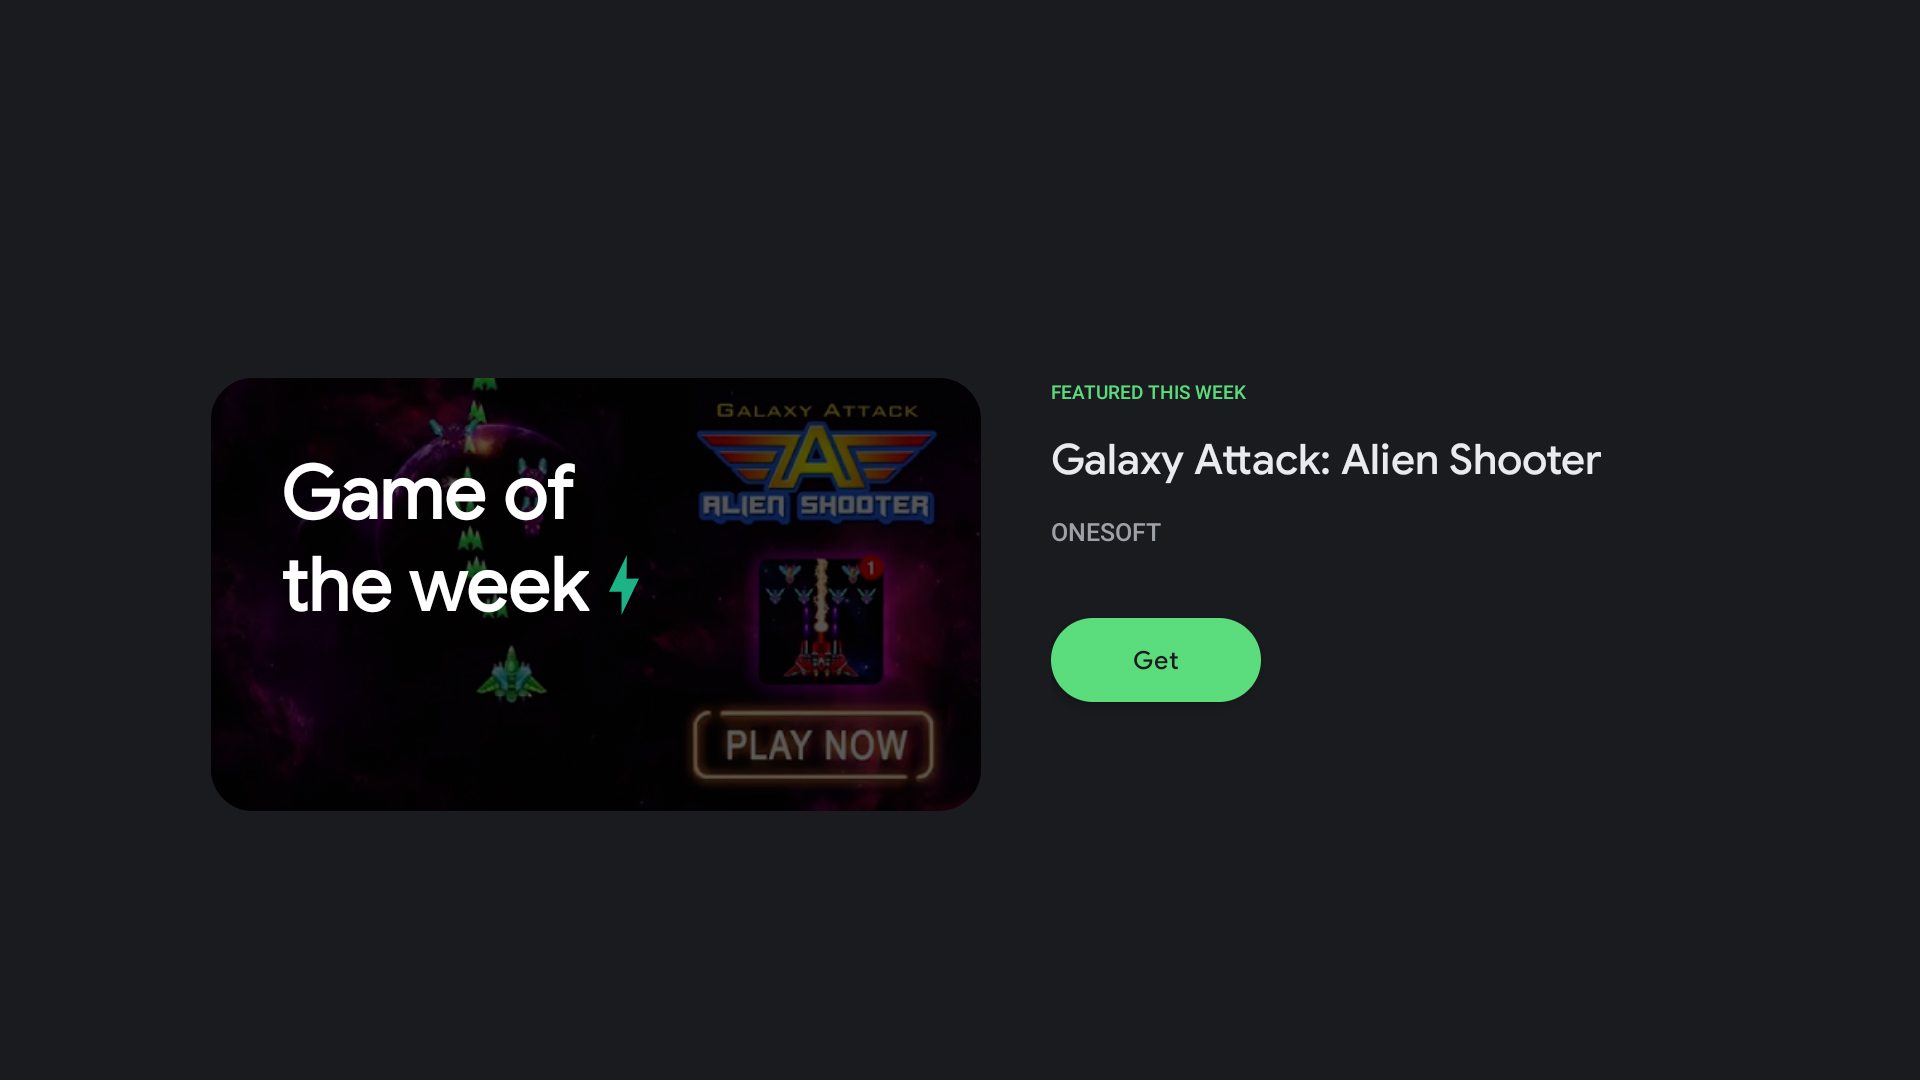 Galaxy Attack: Alien Shooter is the Google Play Games Featured Game of the Week